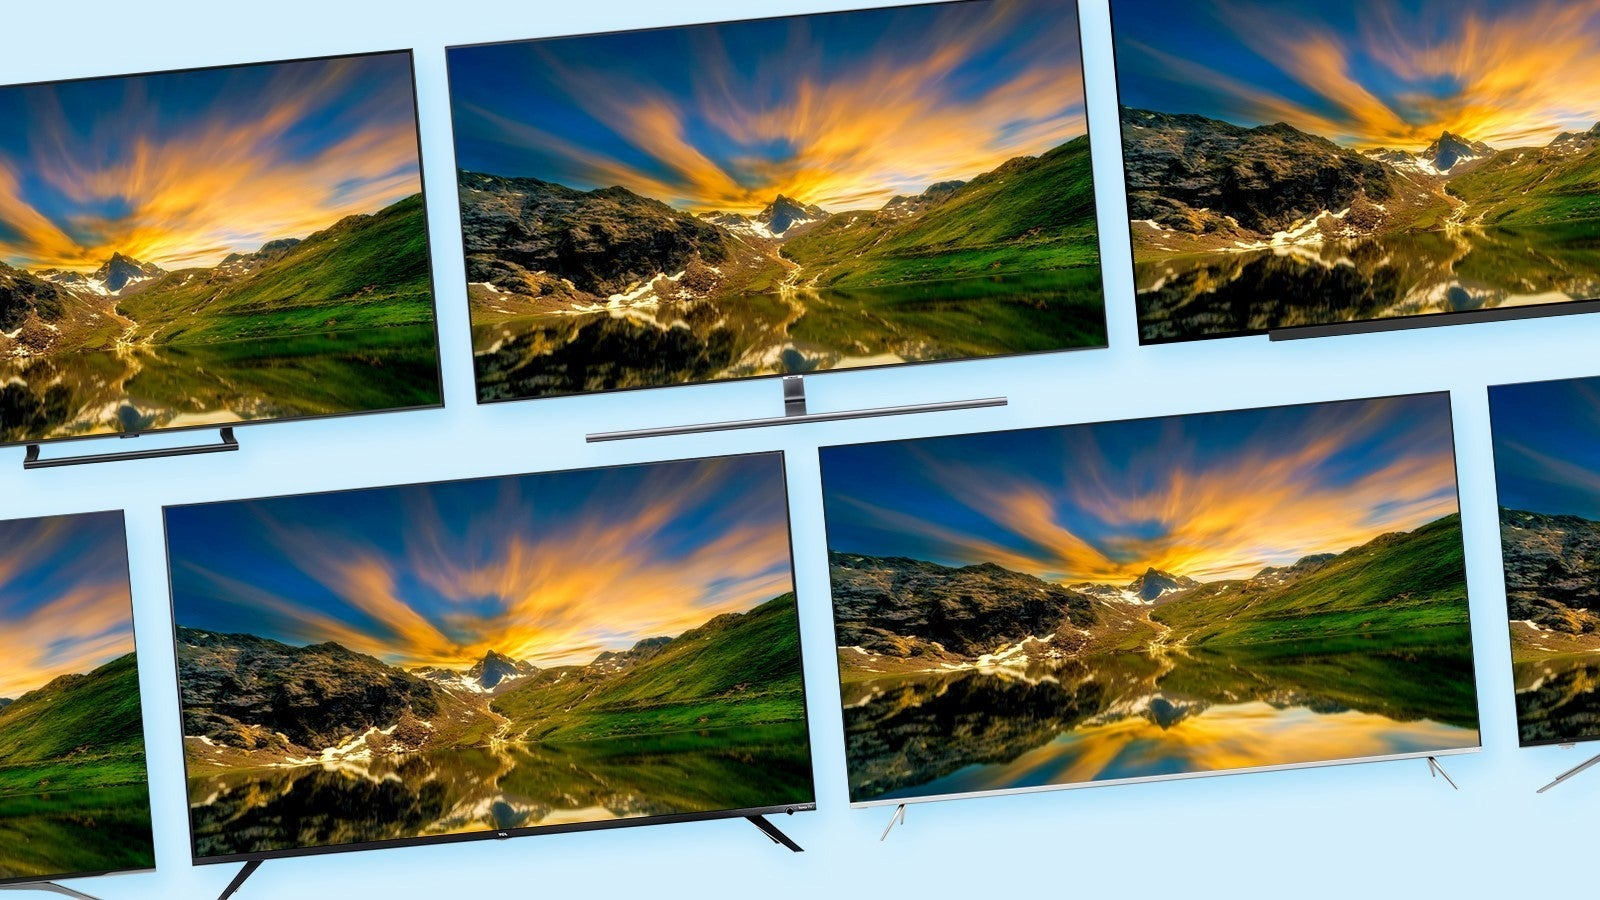 Best TVs of 2019: Reviews and buying advice | TechHive